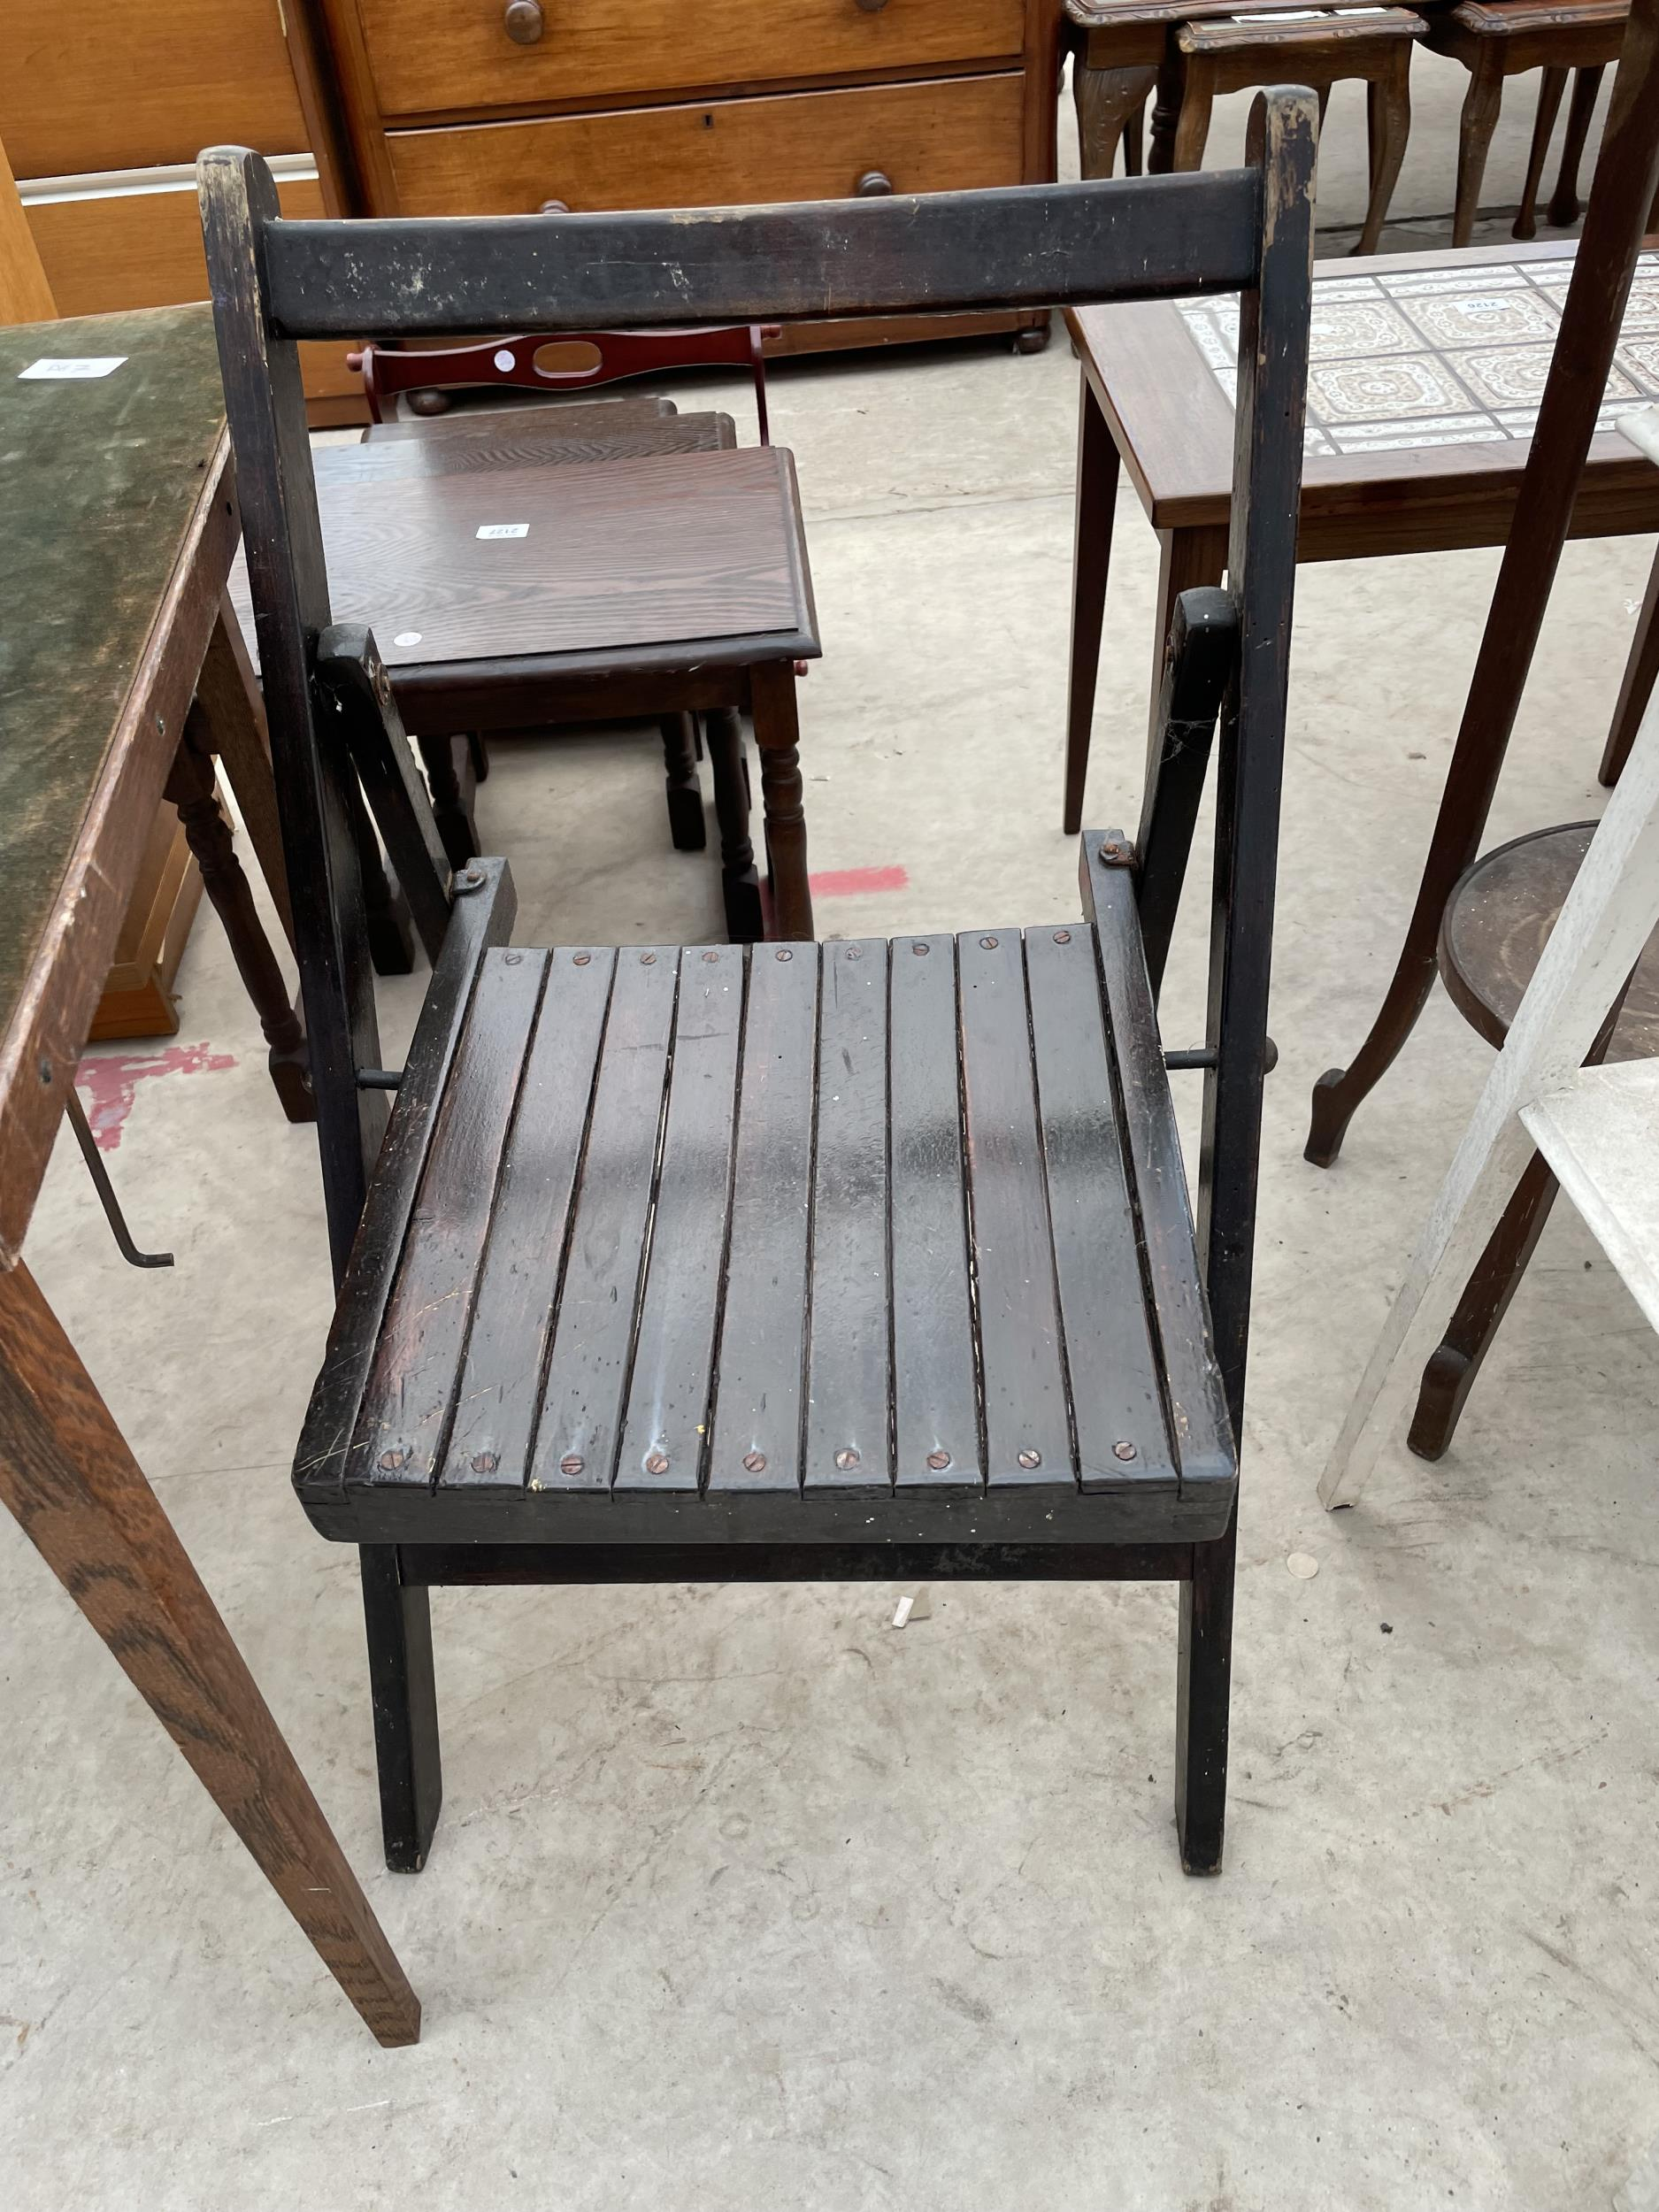 A FOLDING CARD TABLE AND CHAIR, JARDINIER STAND AND PAINTED OCCASIONAL TABLE - Image 4 of 6